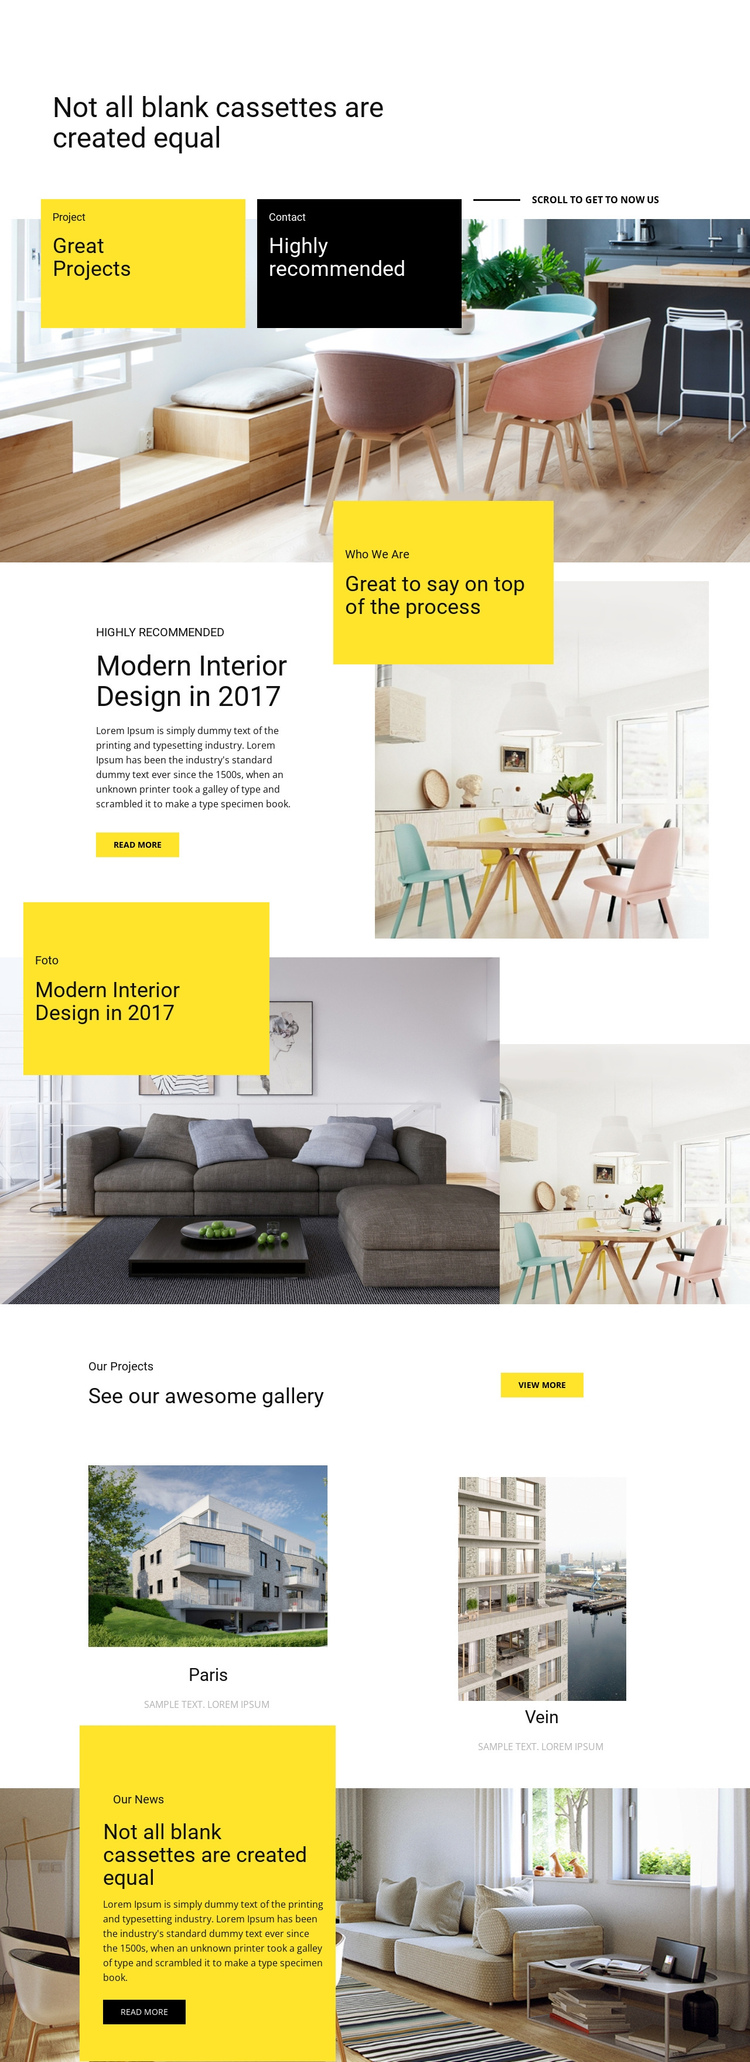 Great projects, high quality One Page Template